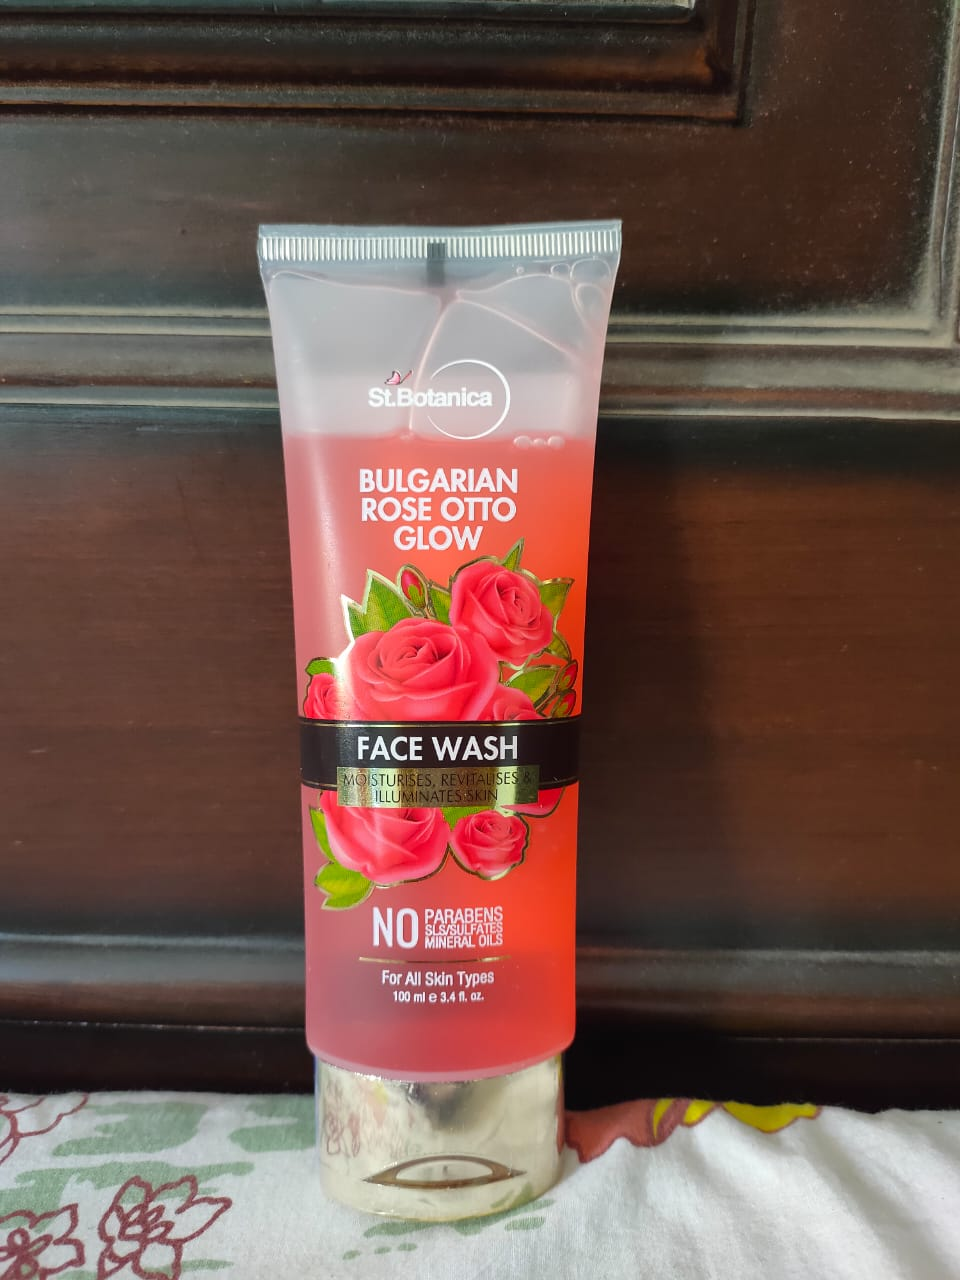 StBotanica Bulgarian Rose Otto Glow Face Wash pic 1-Rejuvenating Face Wash-By rsravani